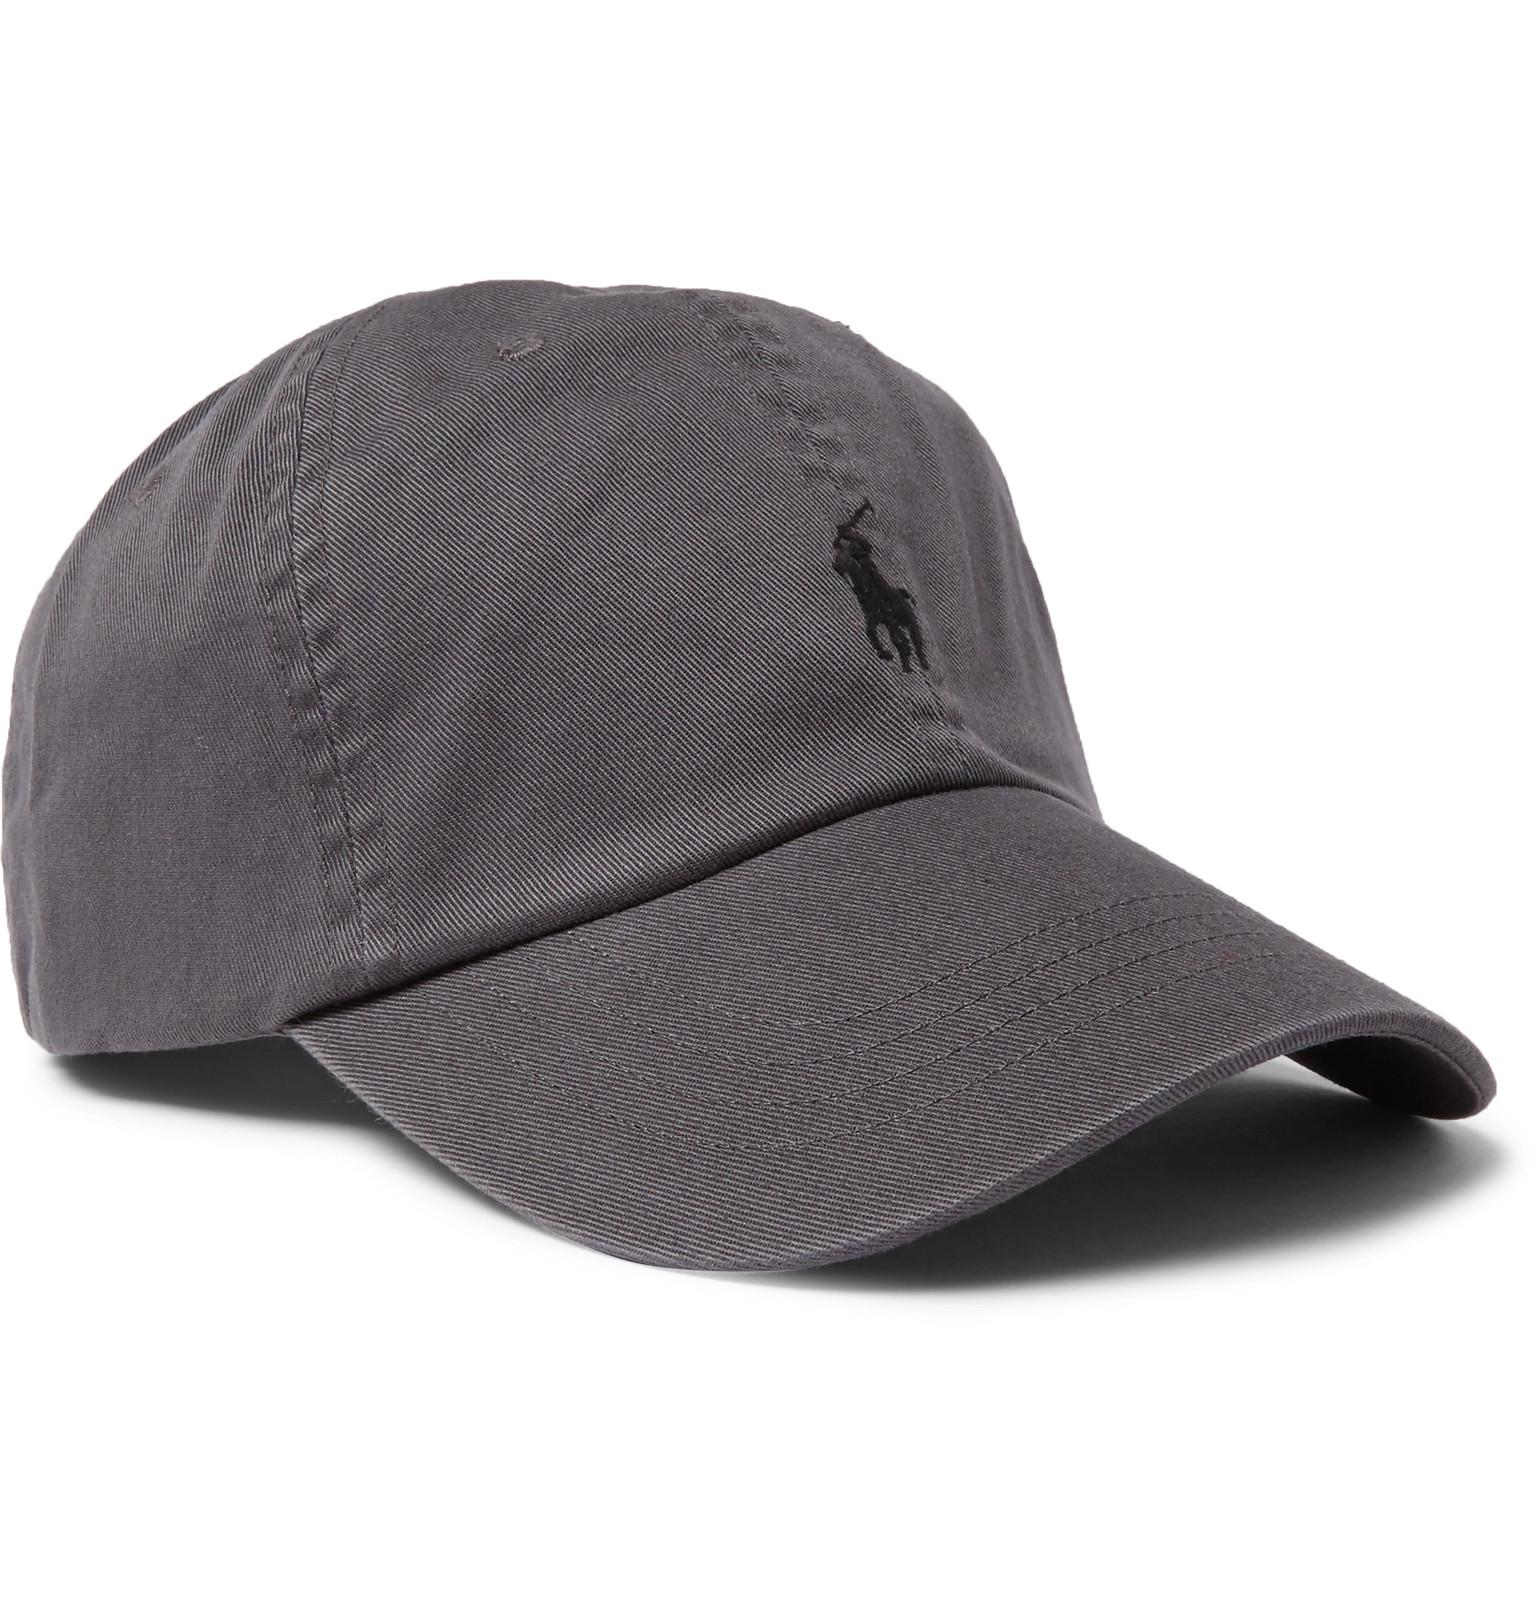 9d6bbeb9a6c Lyst - Polo Ralph Lauren Cotton-twill Baseball Cap in Gray for Men